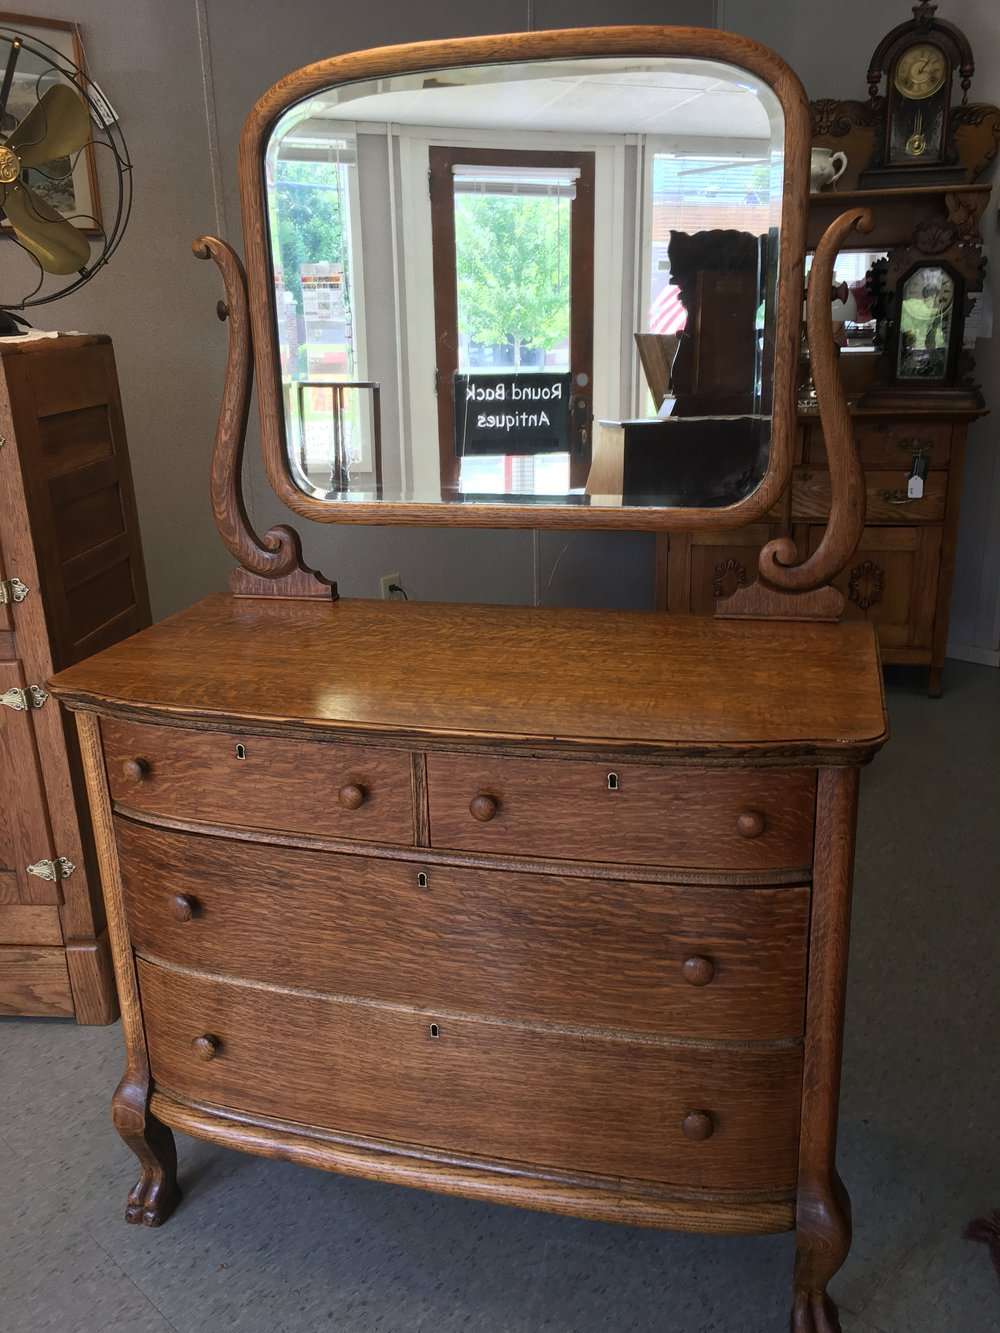 Beautiful bow front dresser with claw feet. Simple yet elegant! Measures 42 wide and 21.5 depth.